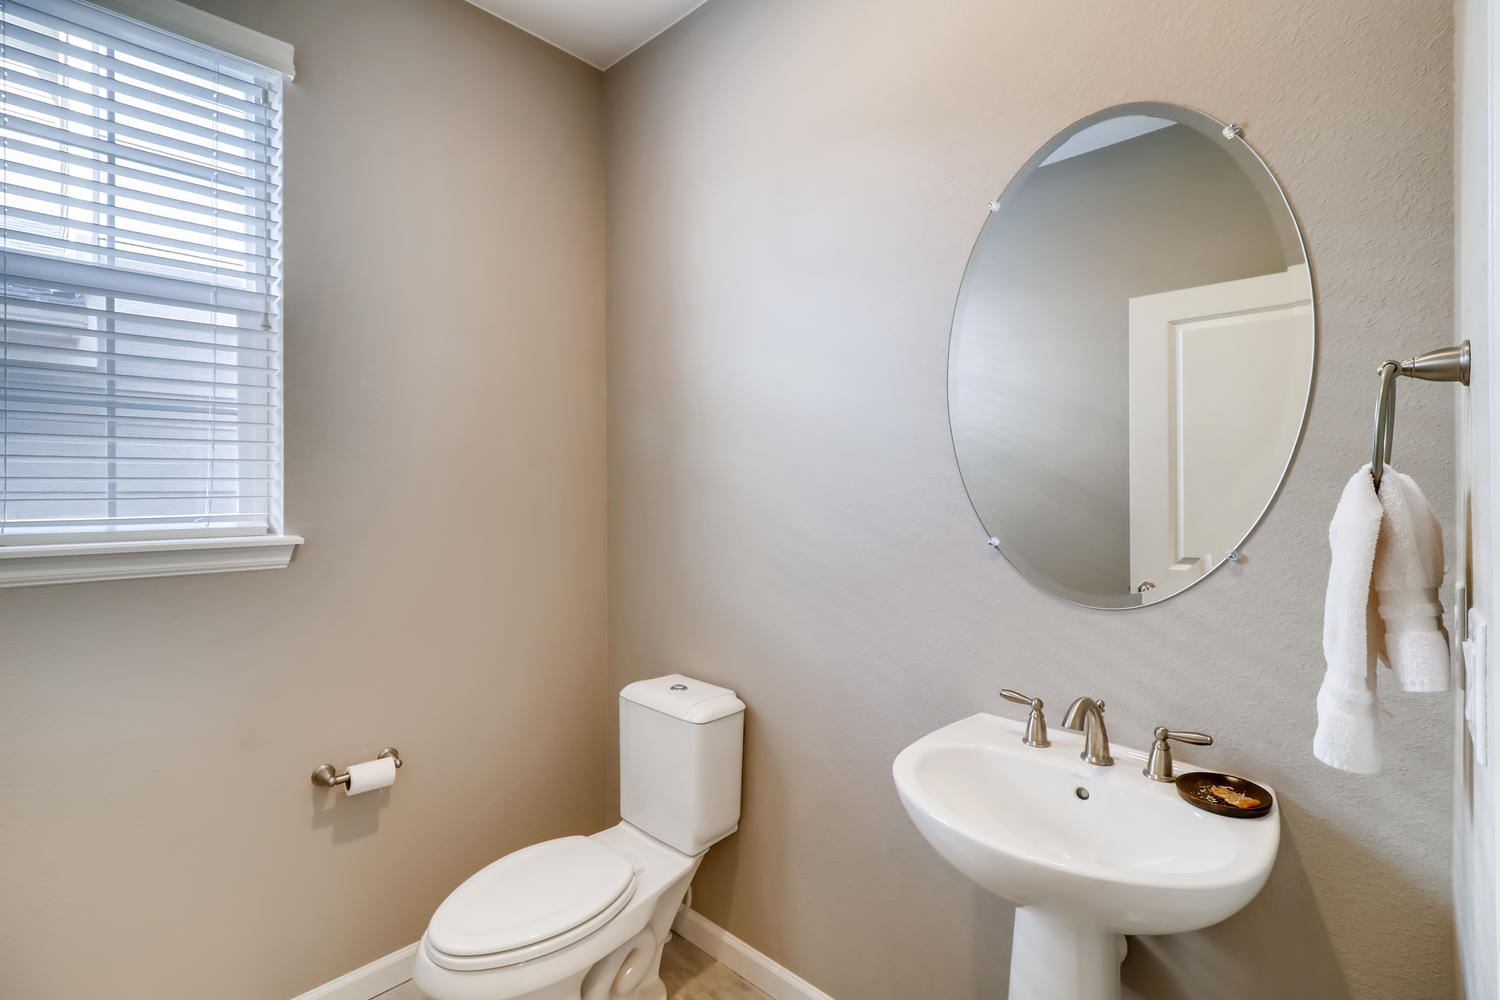 REAL ESTATE LISTING: 1029 Redbud Circle Powder Room